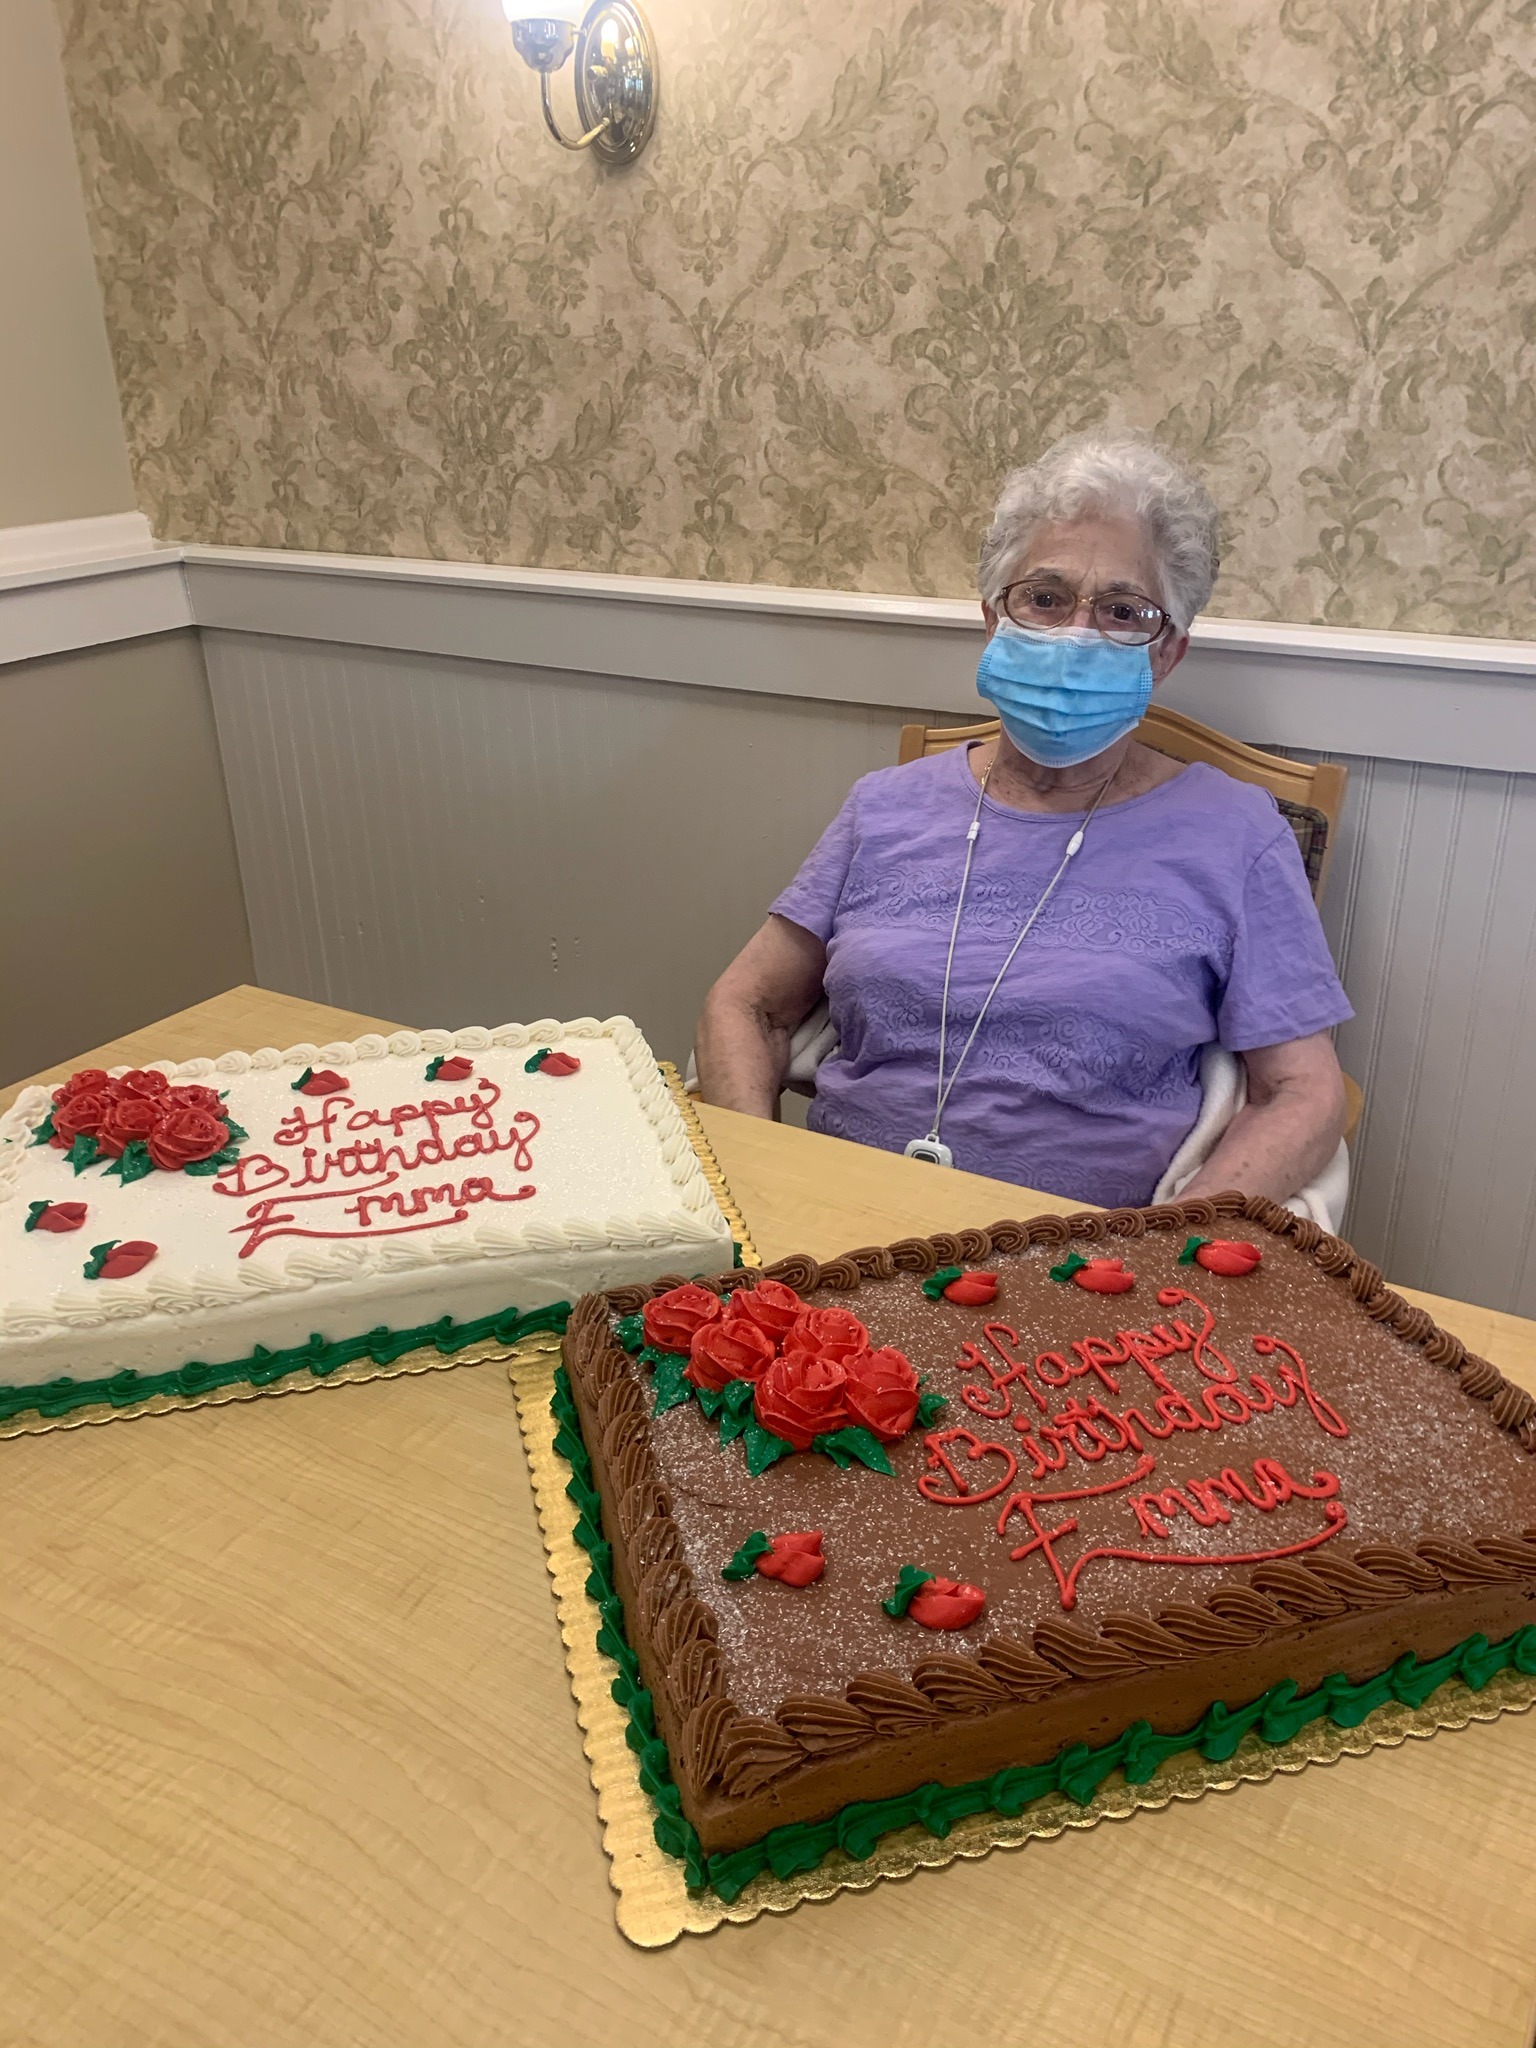 Who says that you can't have 2 cakes on your 93rd birthday? Happy Birthday Emma!